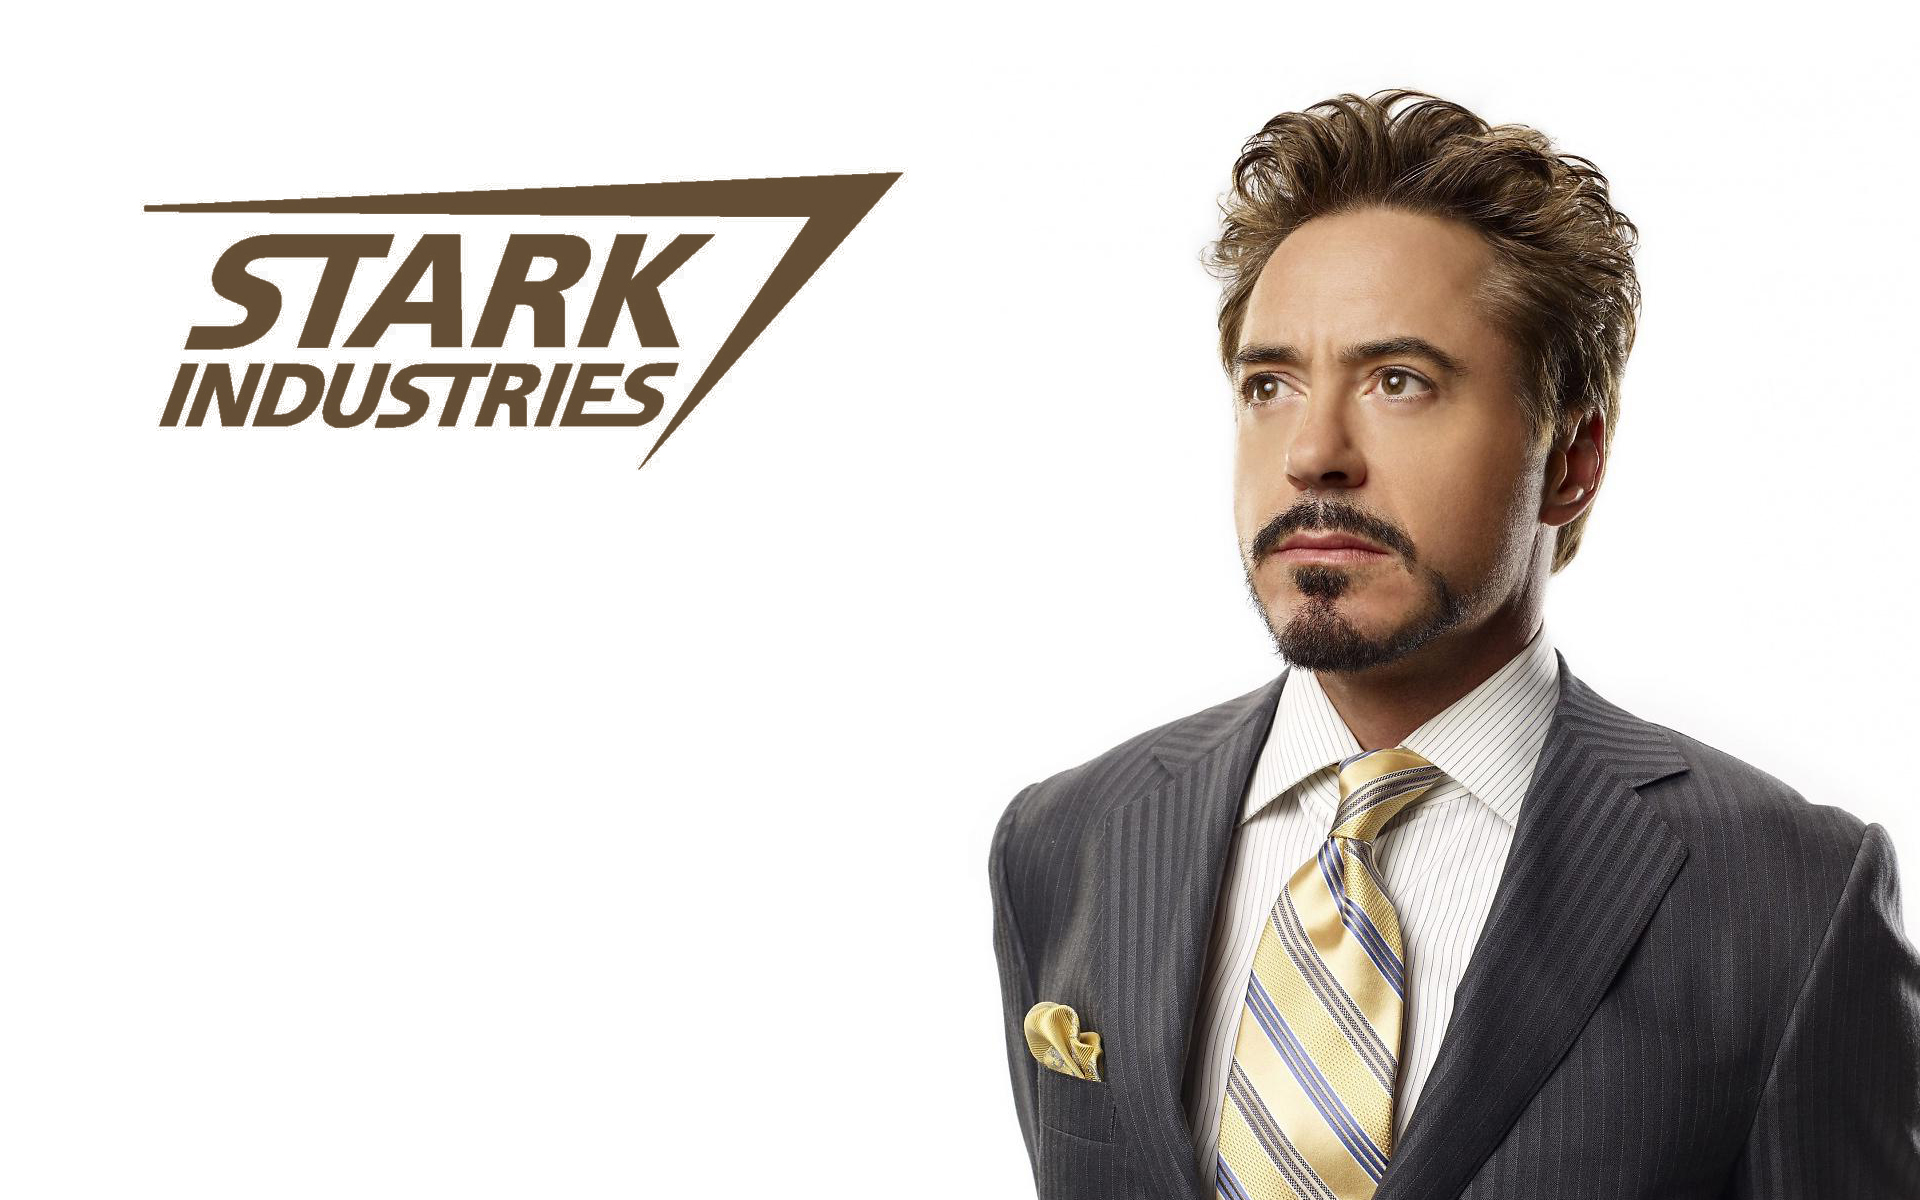 Free hd wallpaper robert downey jr - Robert Downey Jr Hd Wallpapers